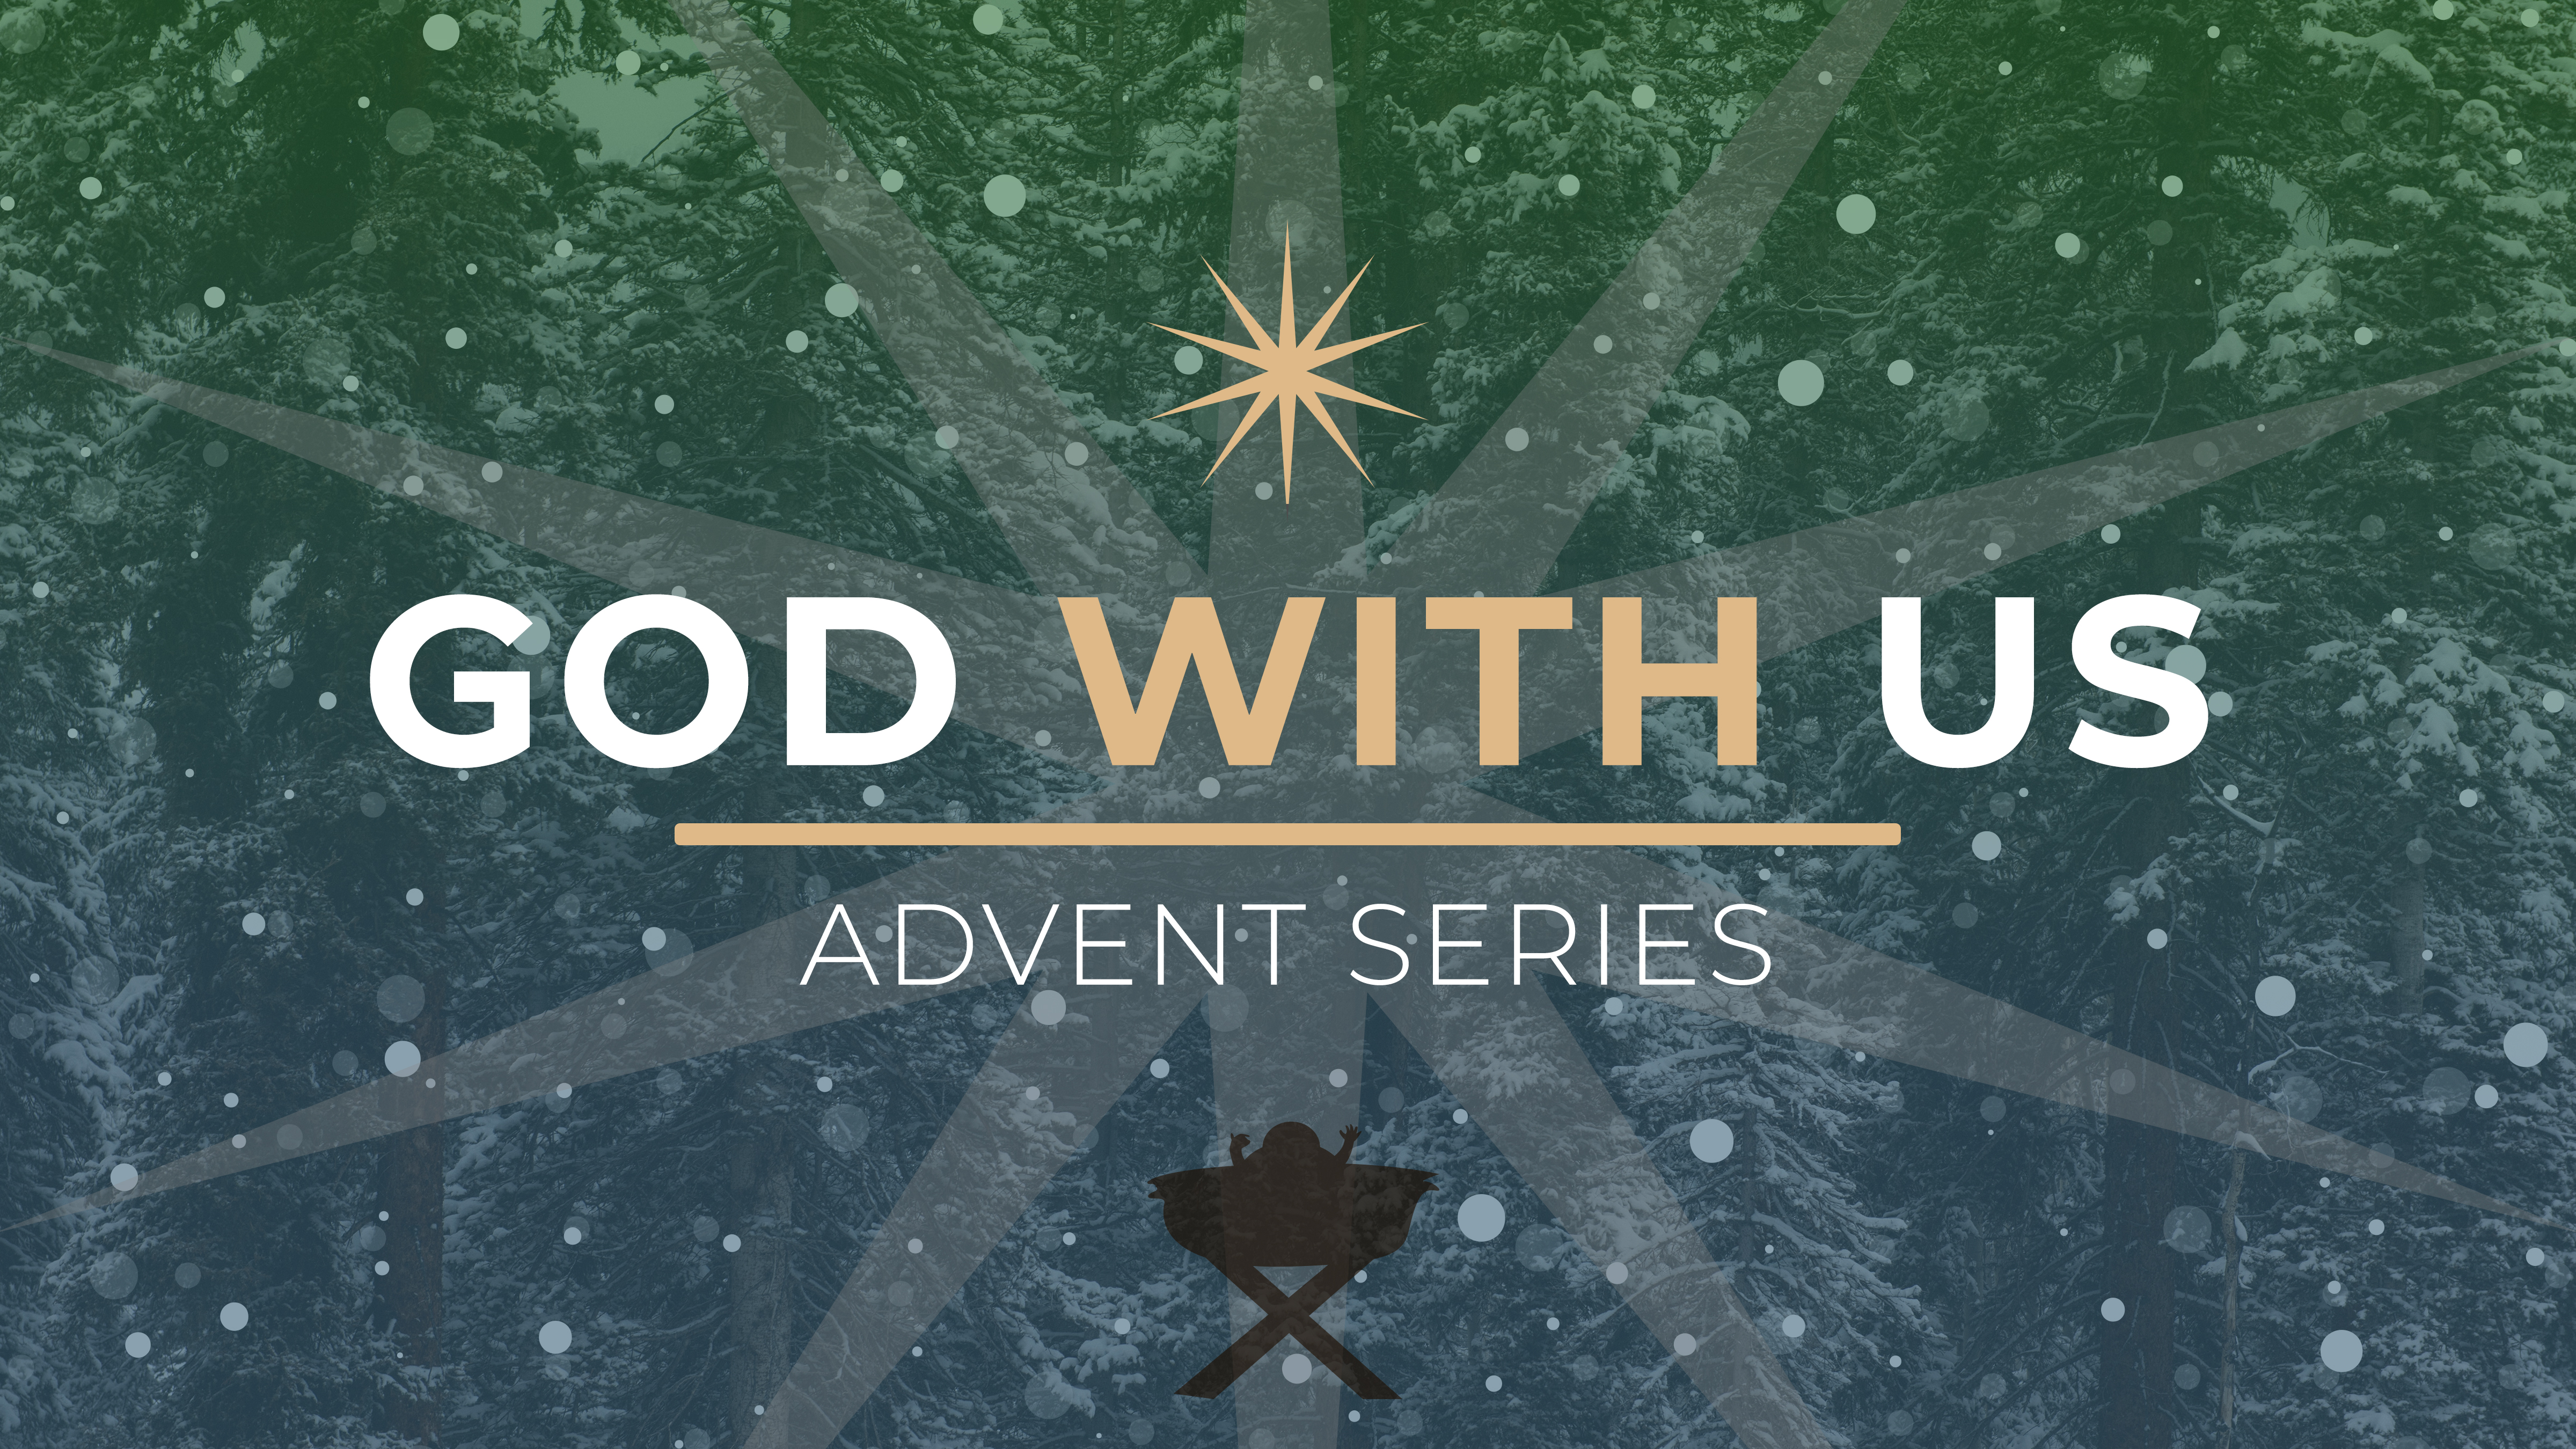 God With Us Sermon graphic.jpg